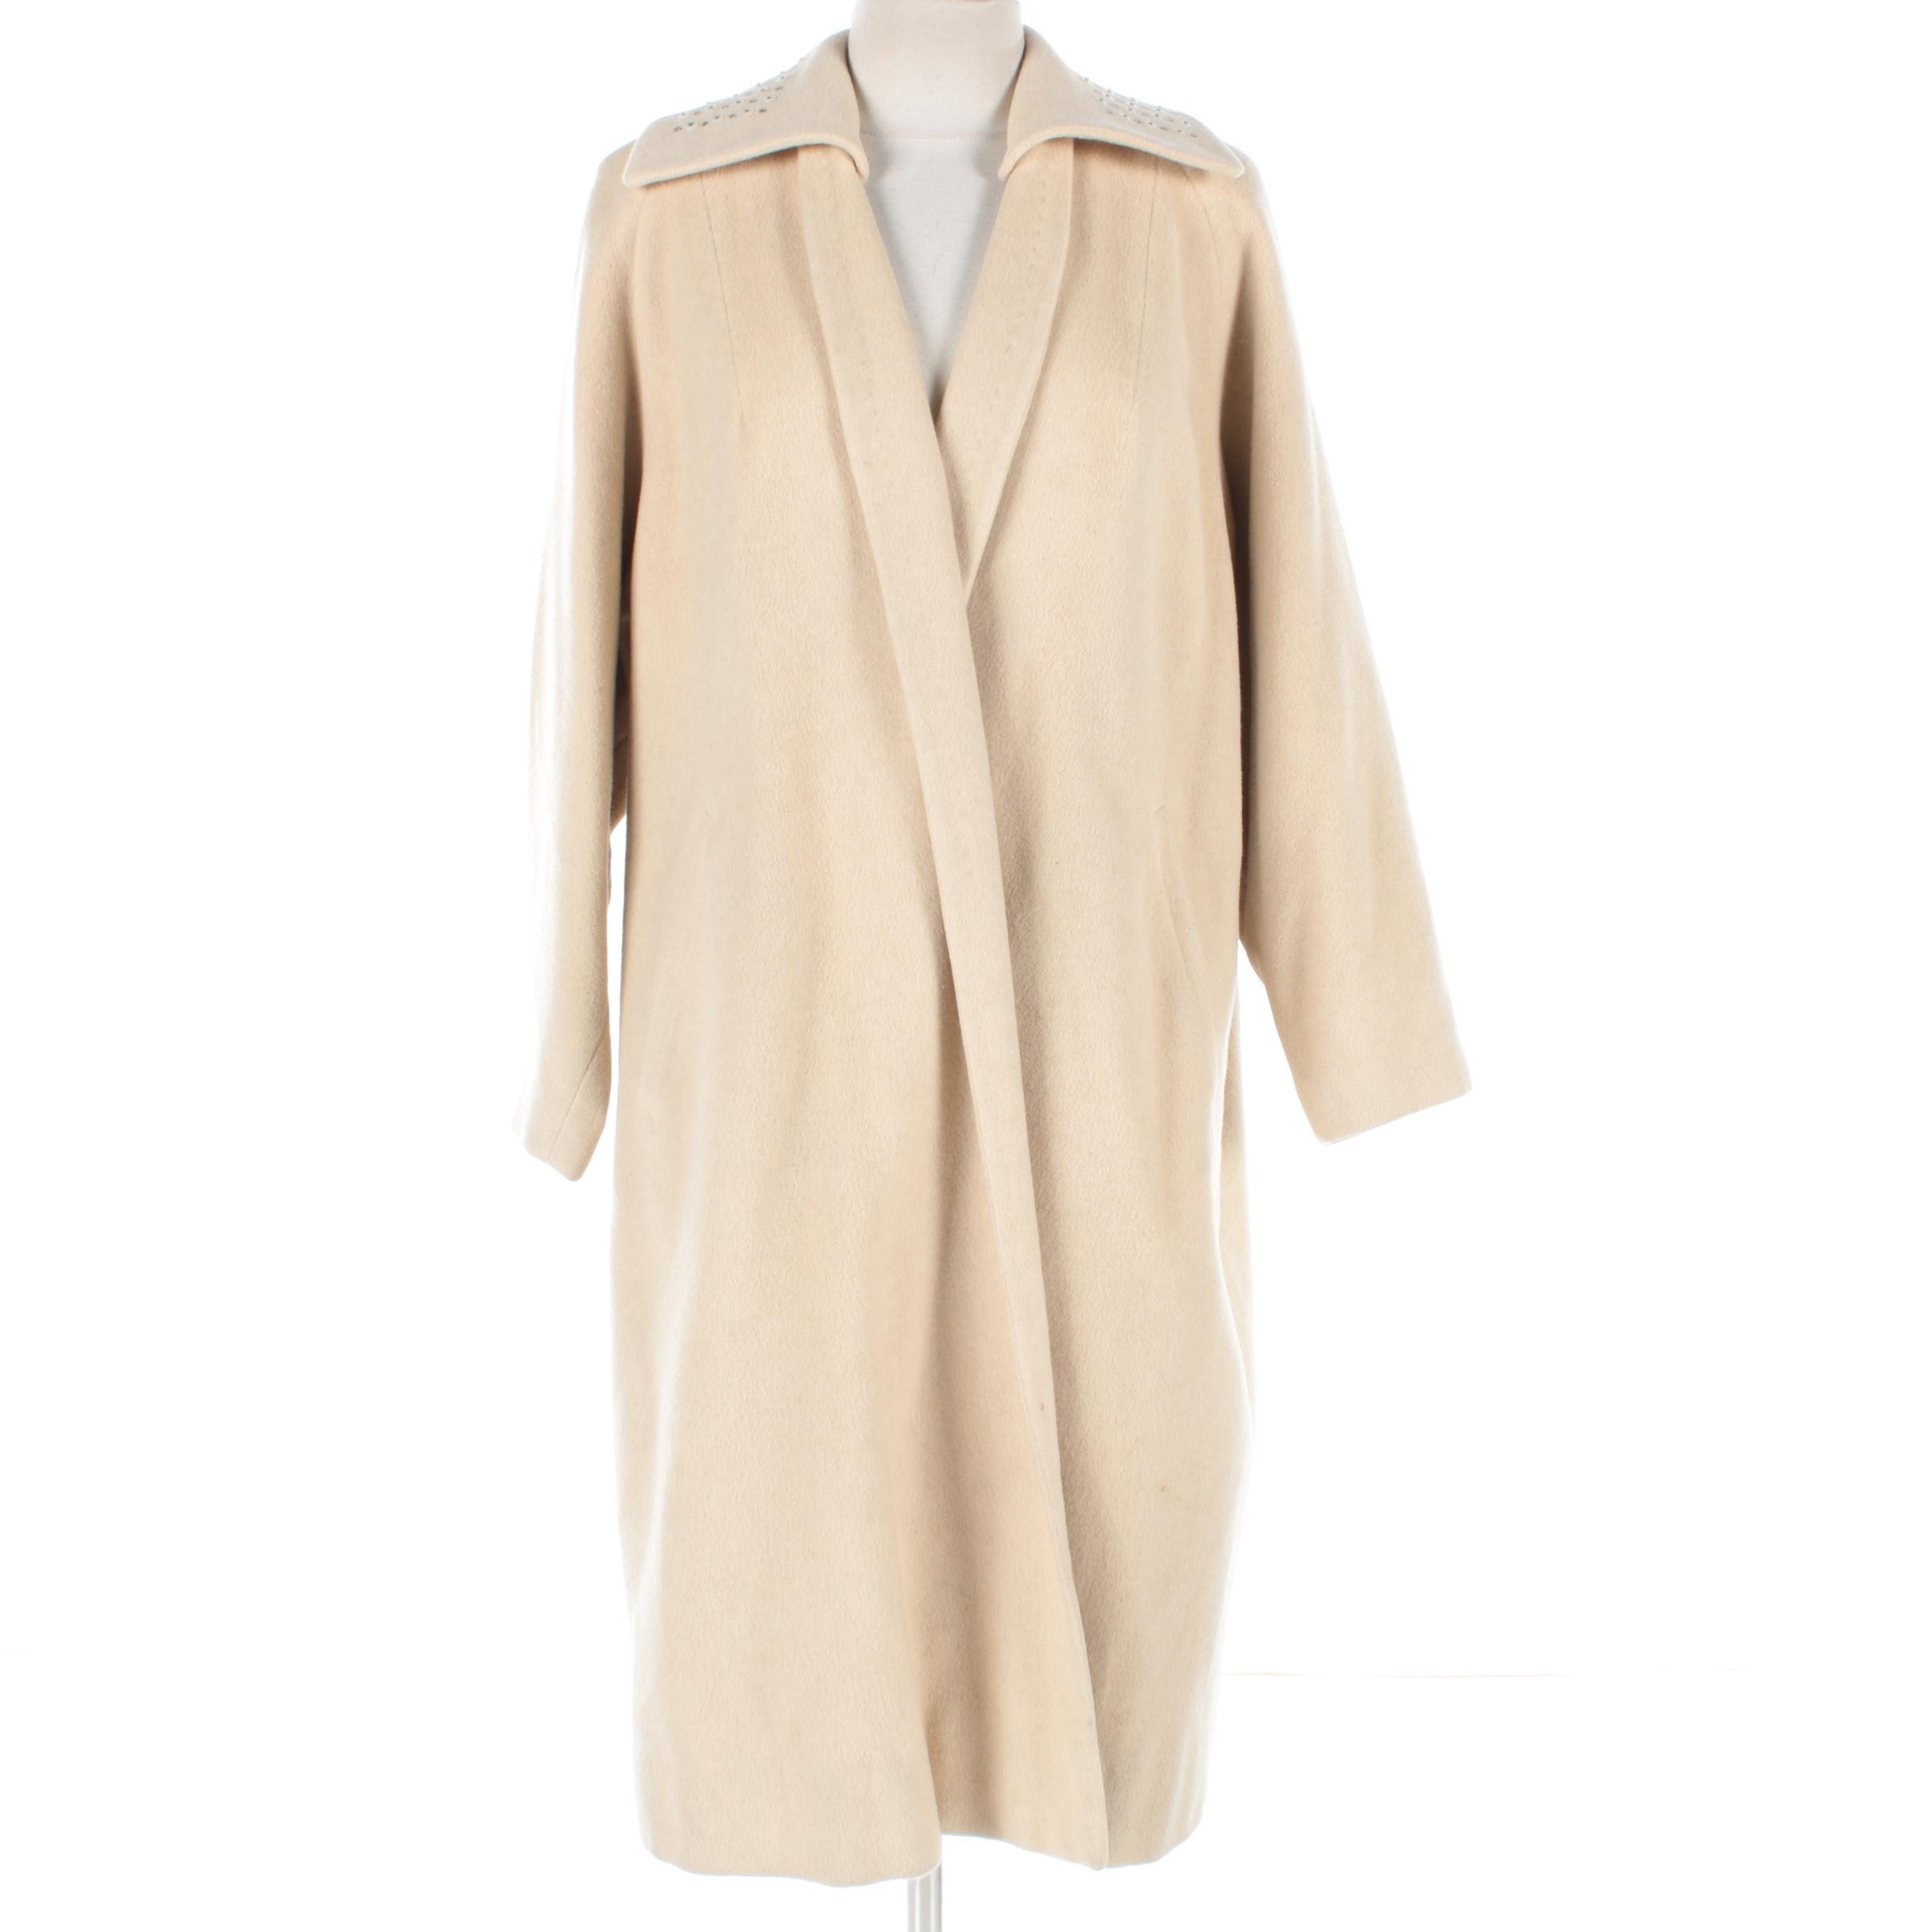 Neusteters Cashmere Coat with Detachable Embellished Collar